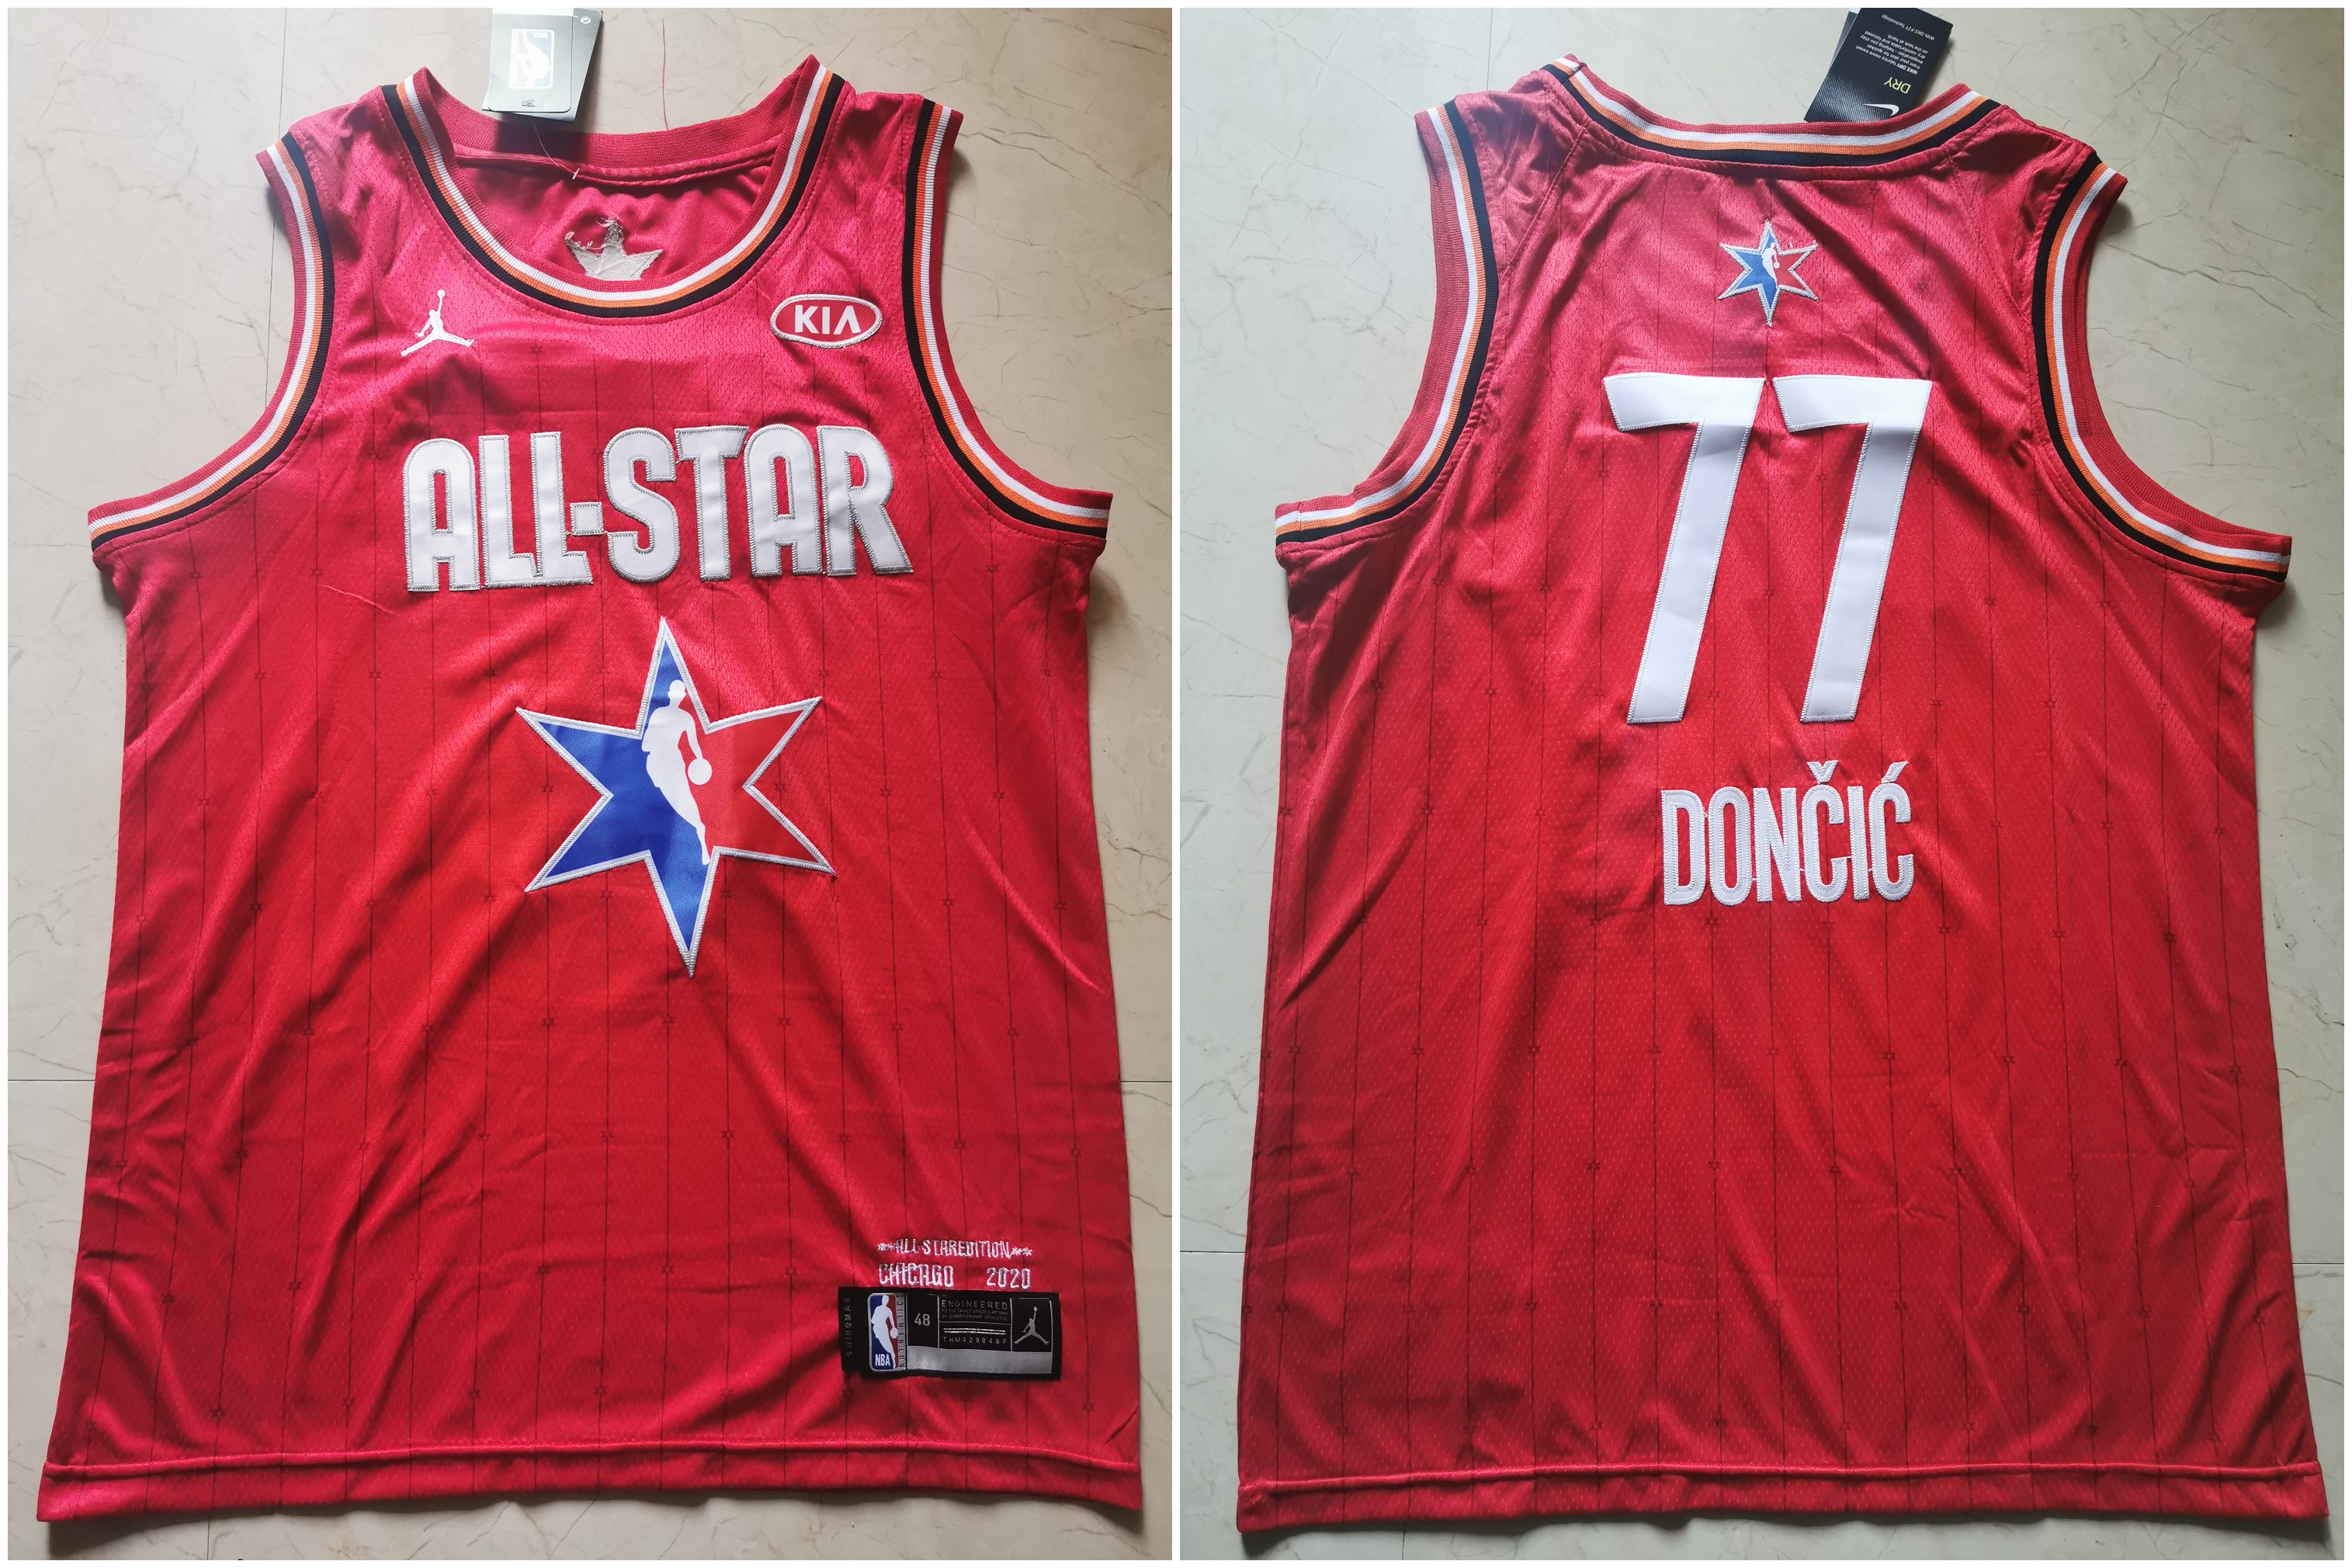 Mavericks 77 Luka Doncic Red 2020 NBA All-Star Jordan Brand Swingman Jersey